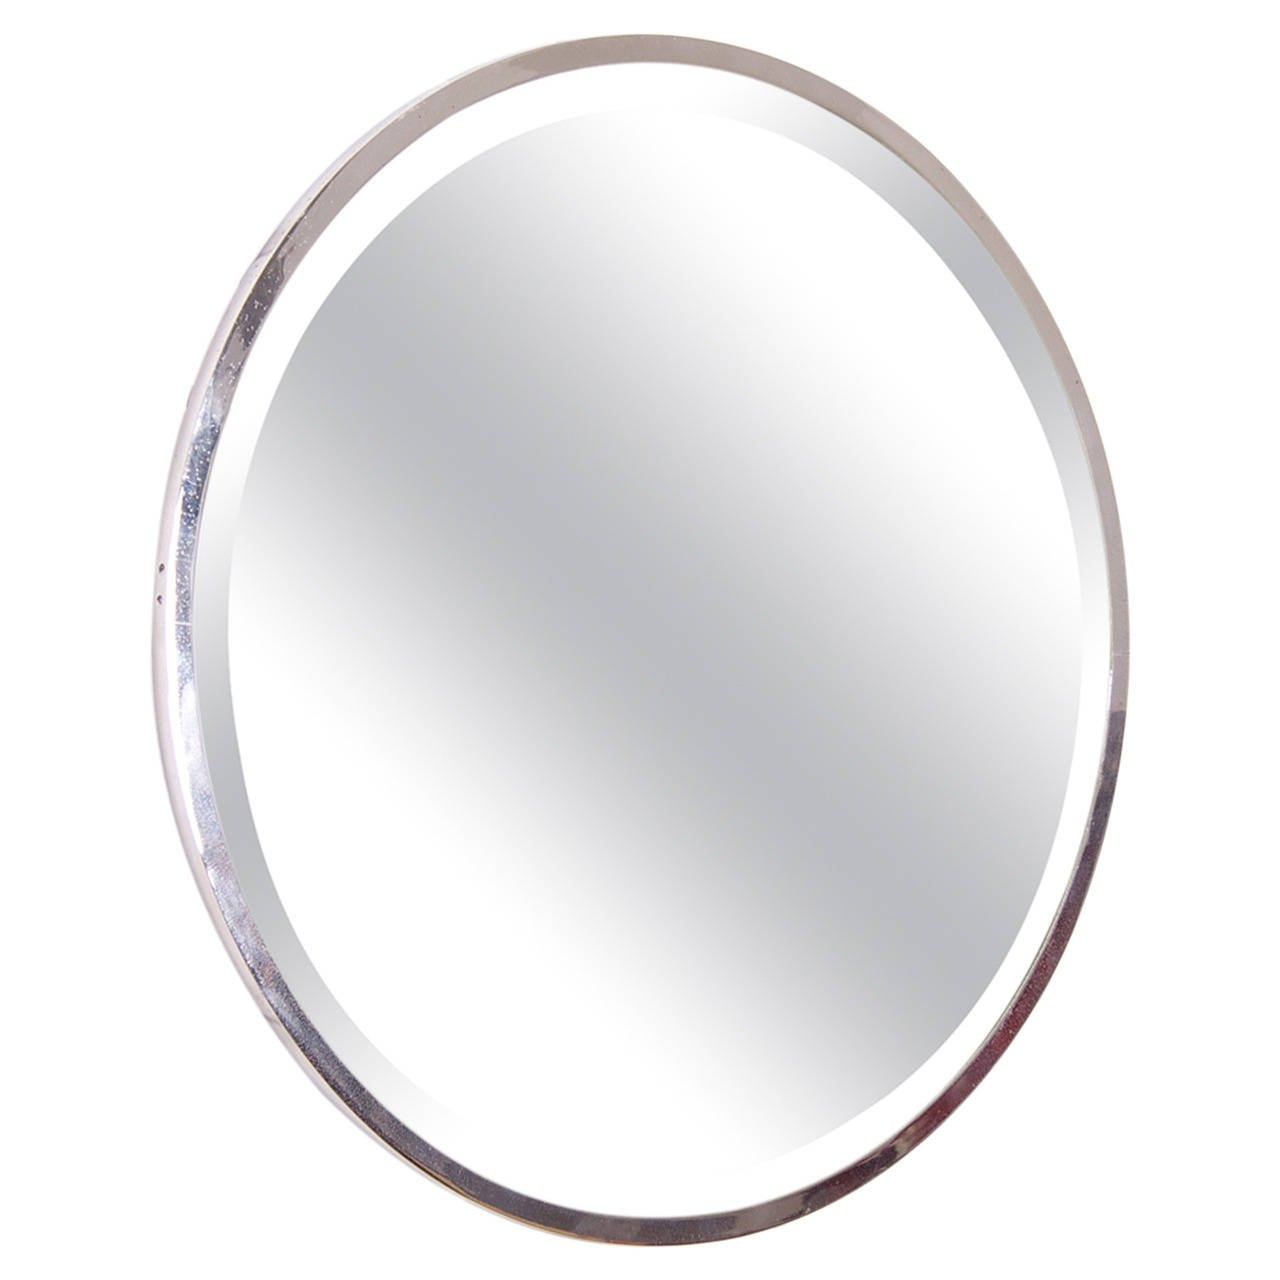 Round Nickel Plated French Art Deco Wall Mirror For Sale At 1stdibs With Round Art Deco Mirror (Image 15 of 15)